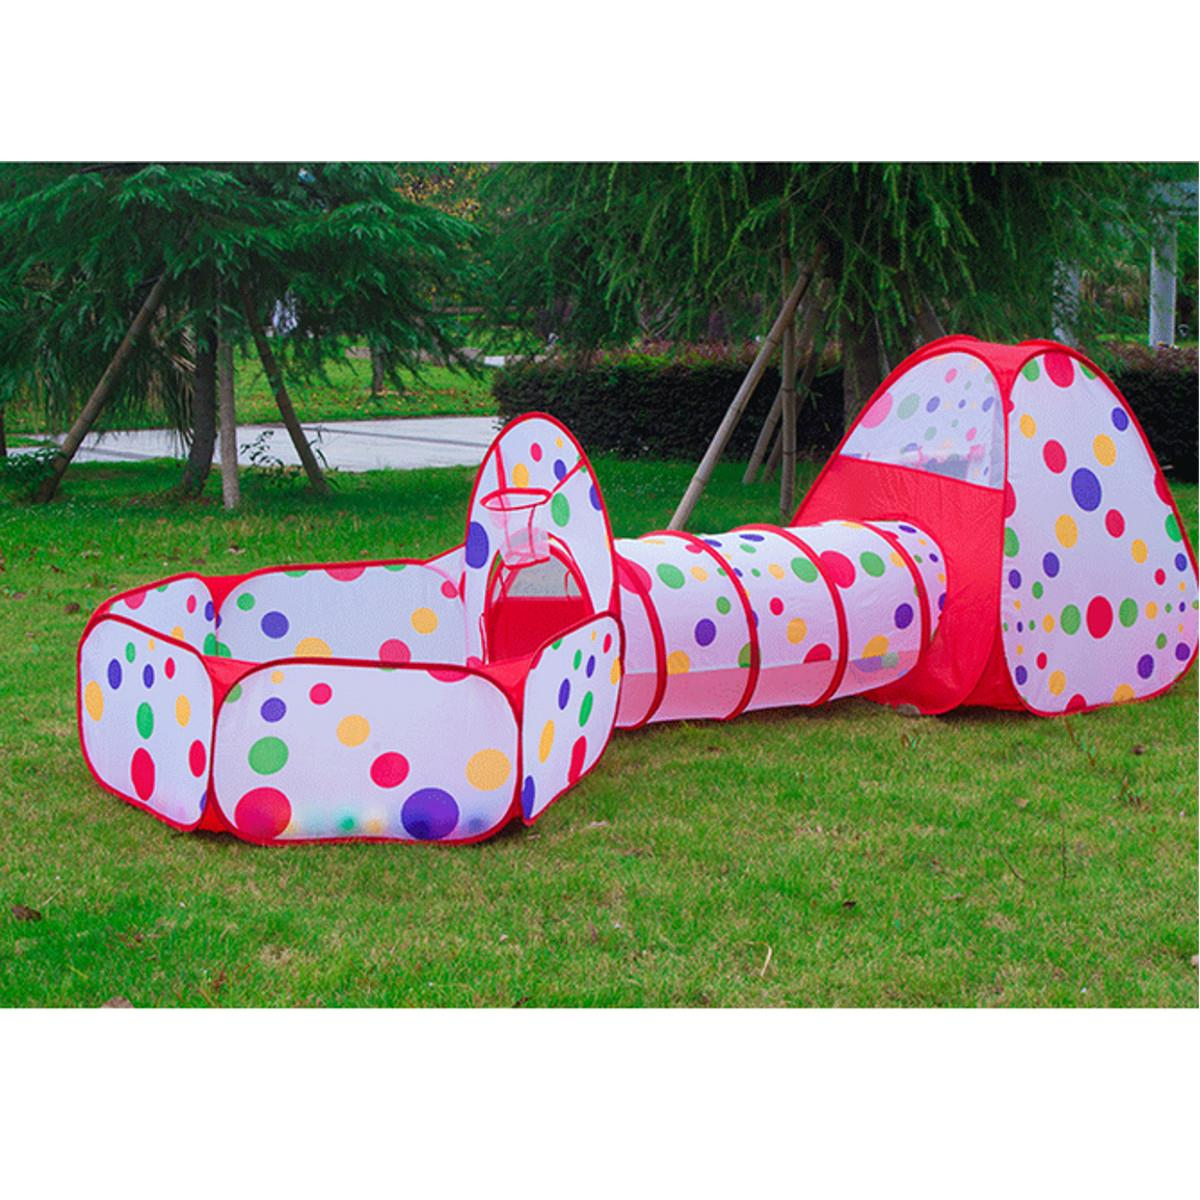 3pcs set Foldable Kids Toddler Tunnel Pop Up Play Tent font b Toys b font For